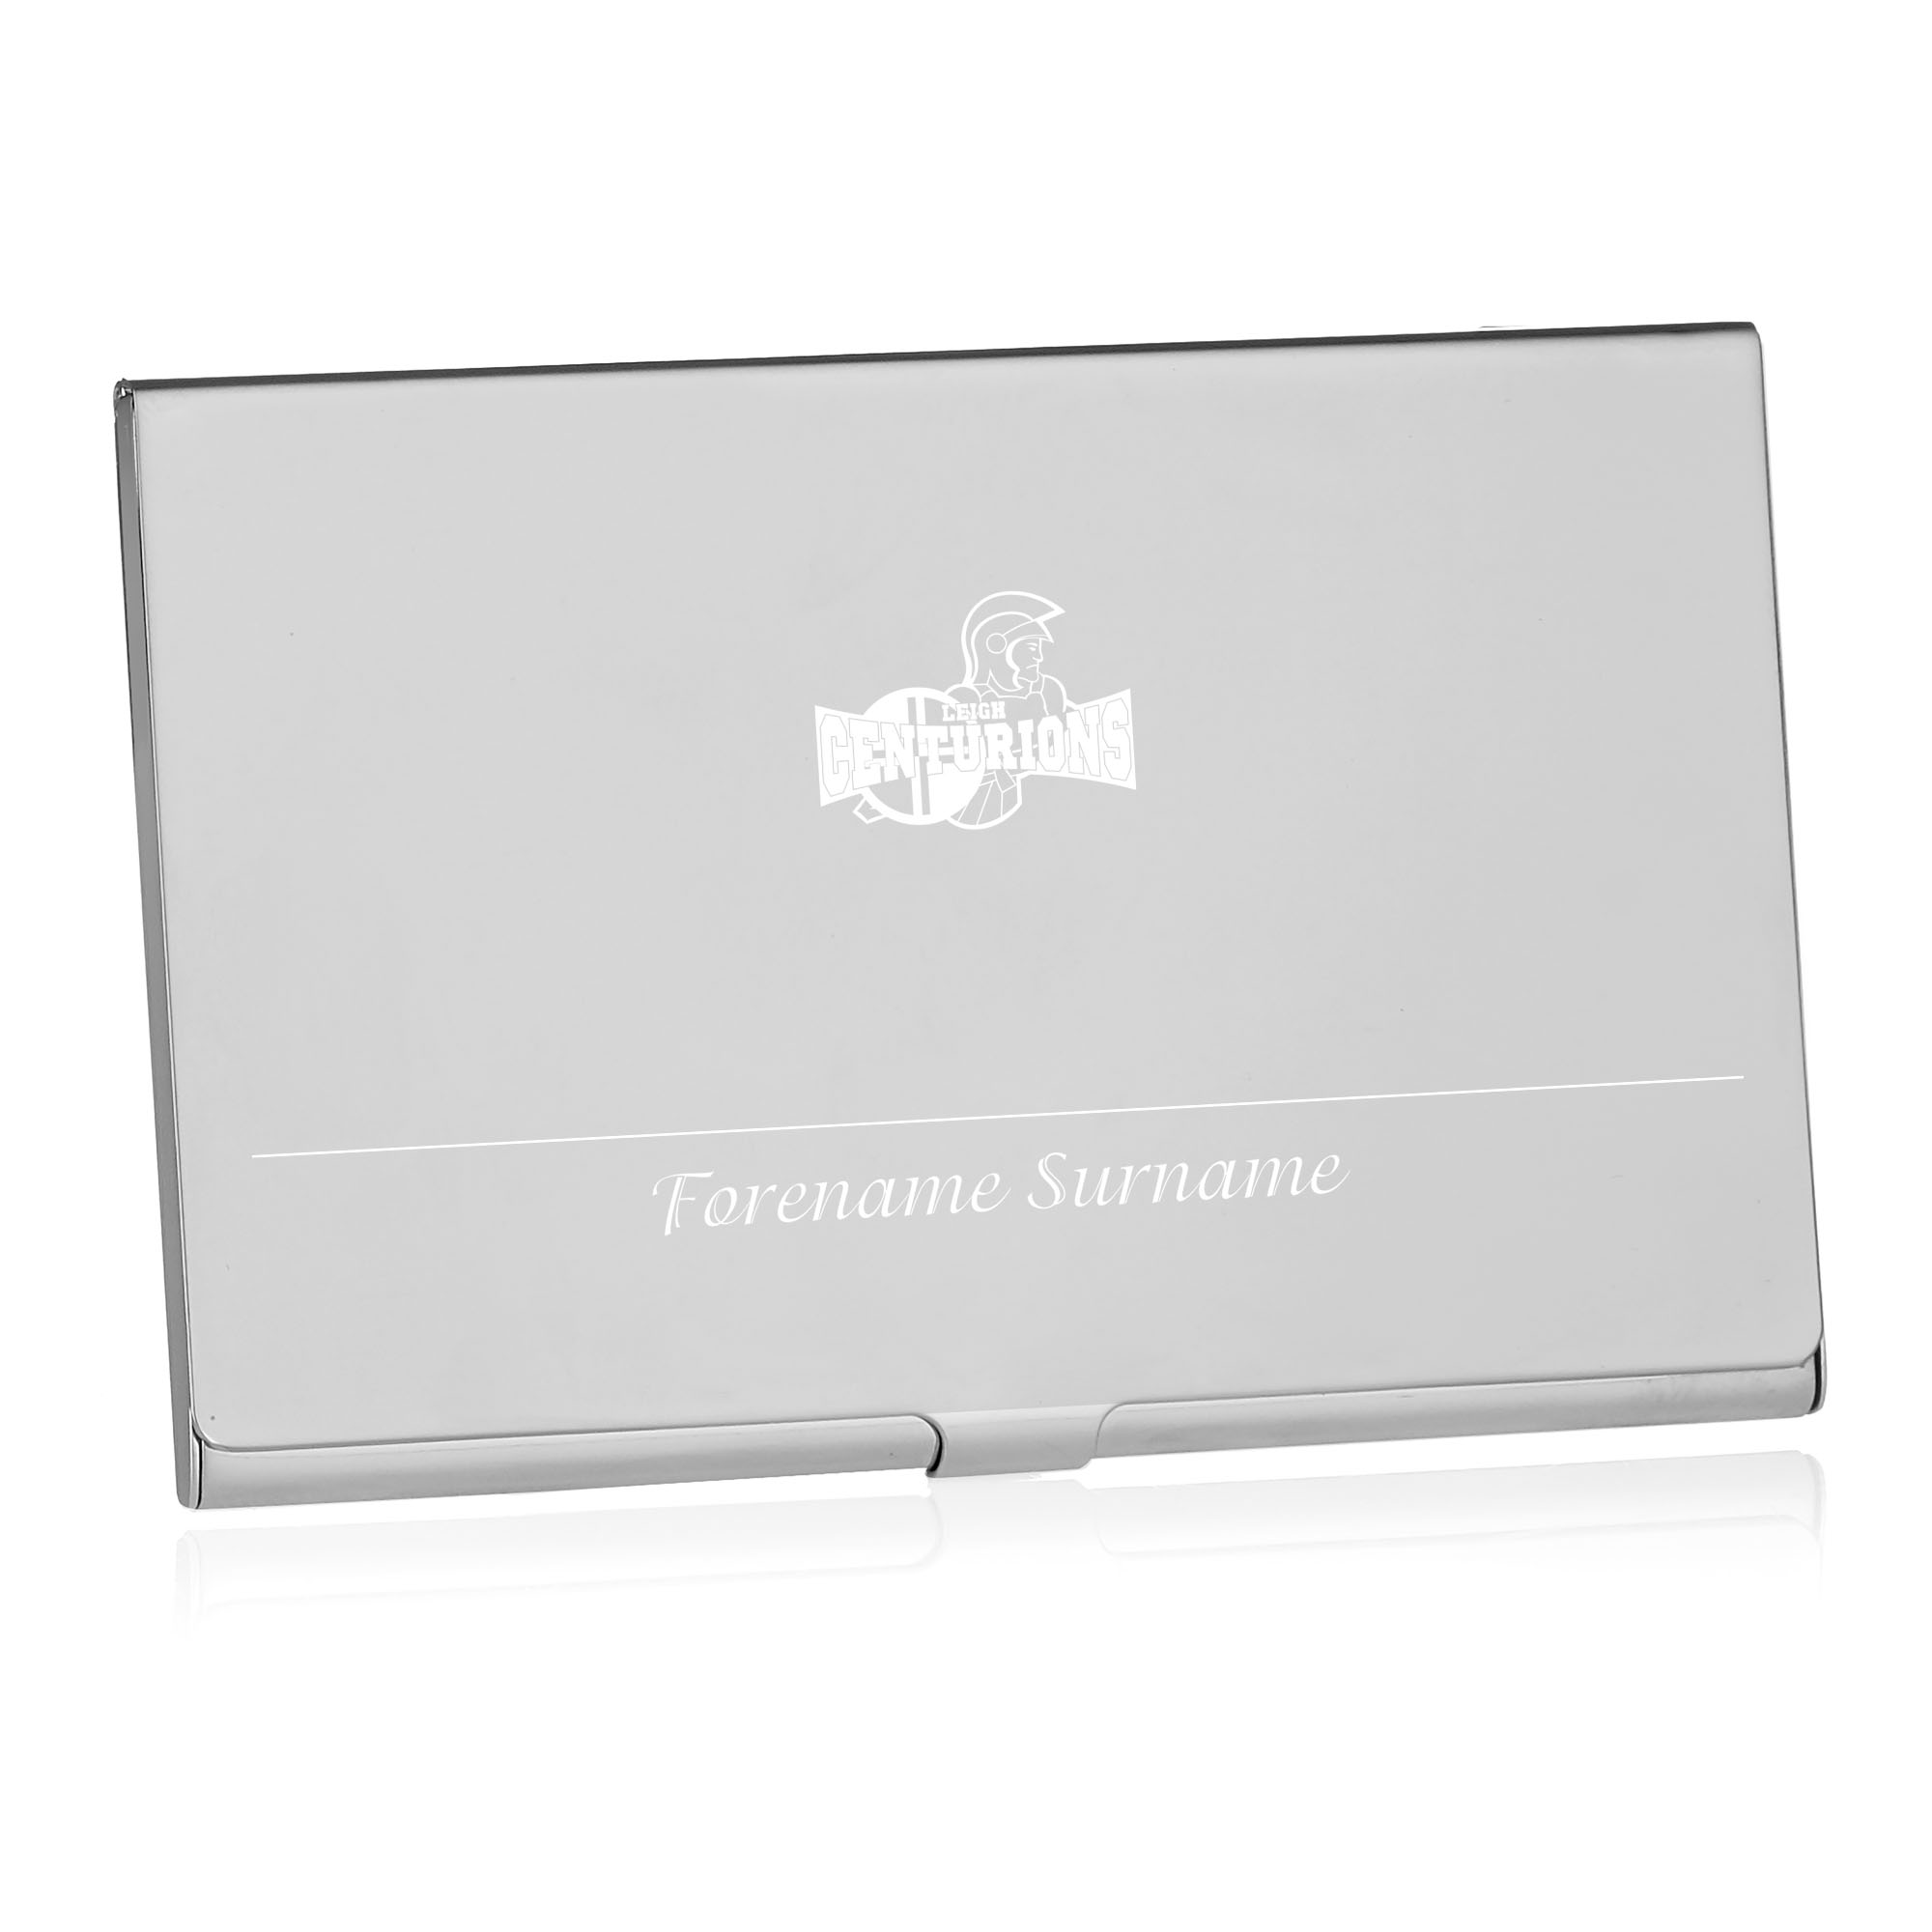 Leigh Centurions Executive Business Card Holder